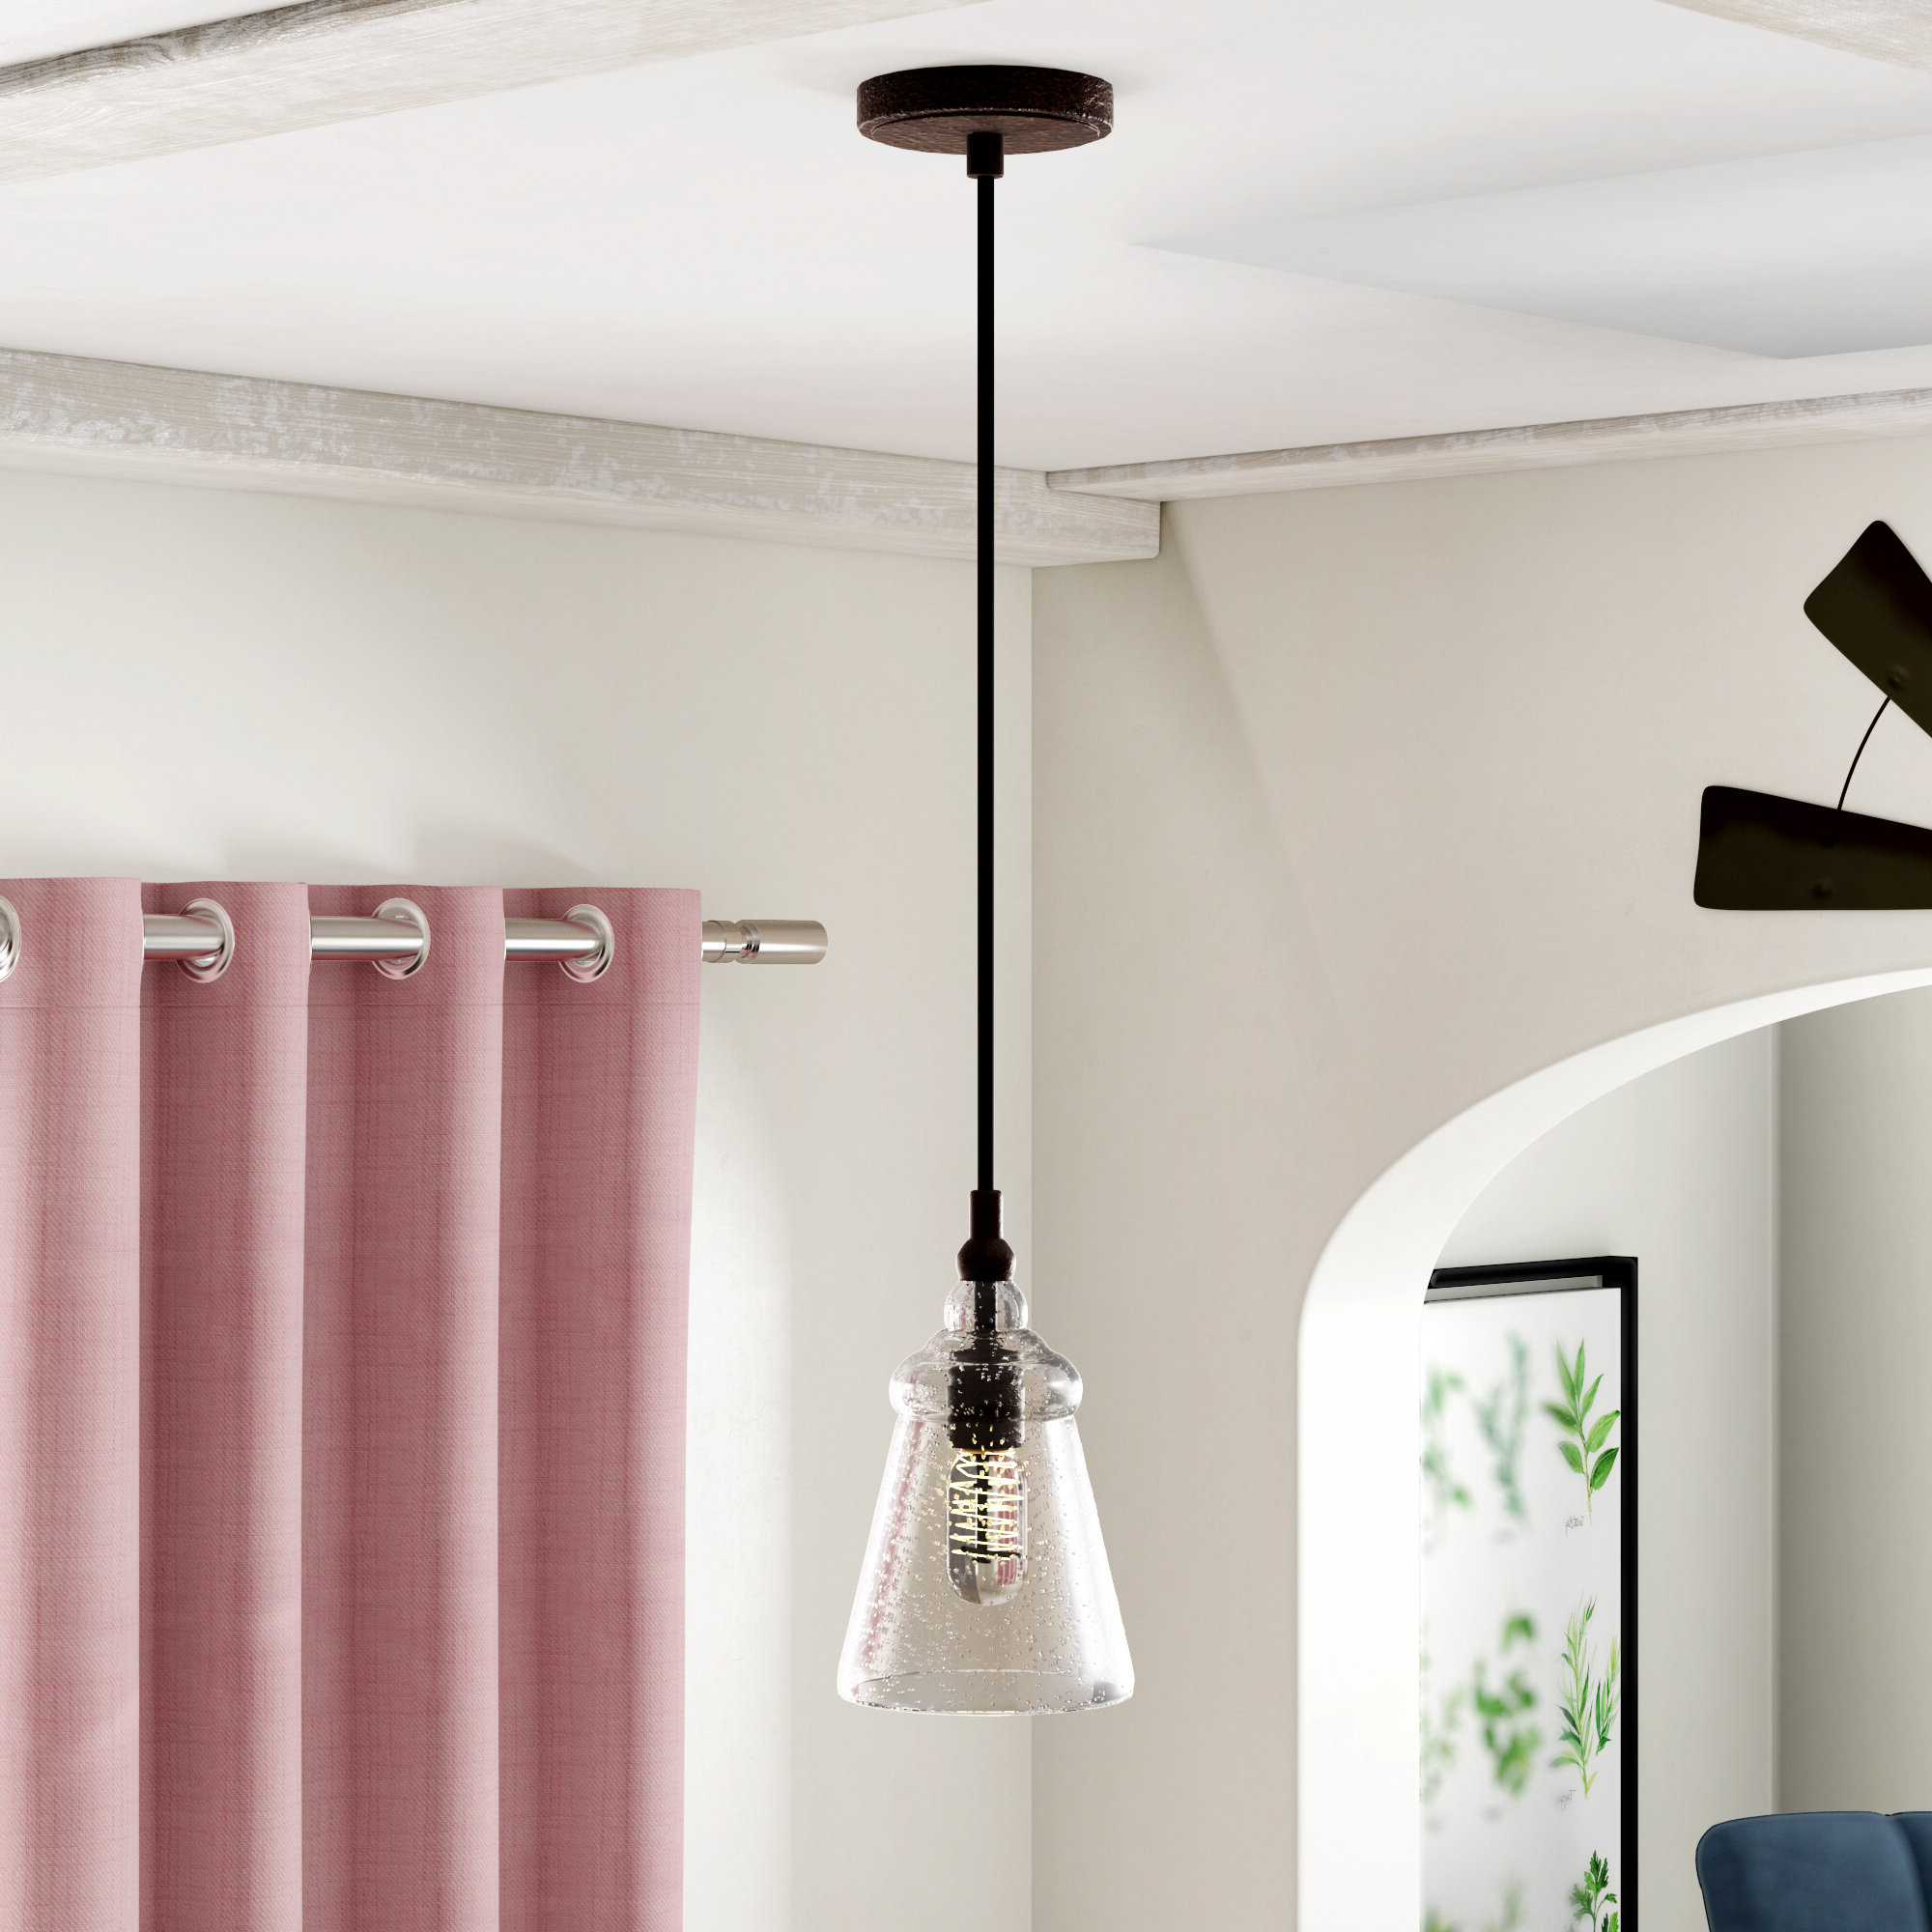 Sargent 1 Light Single Bell Pendants Intended For Well Liked Sharwari 1 Light Single Bell Pendant (Gallery 3 of 20)